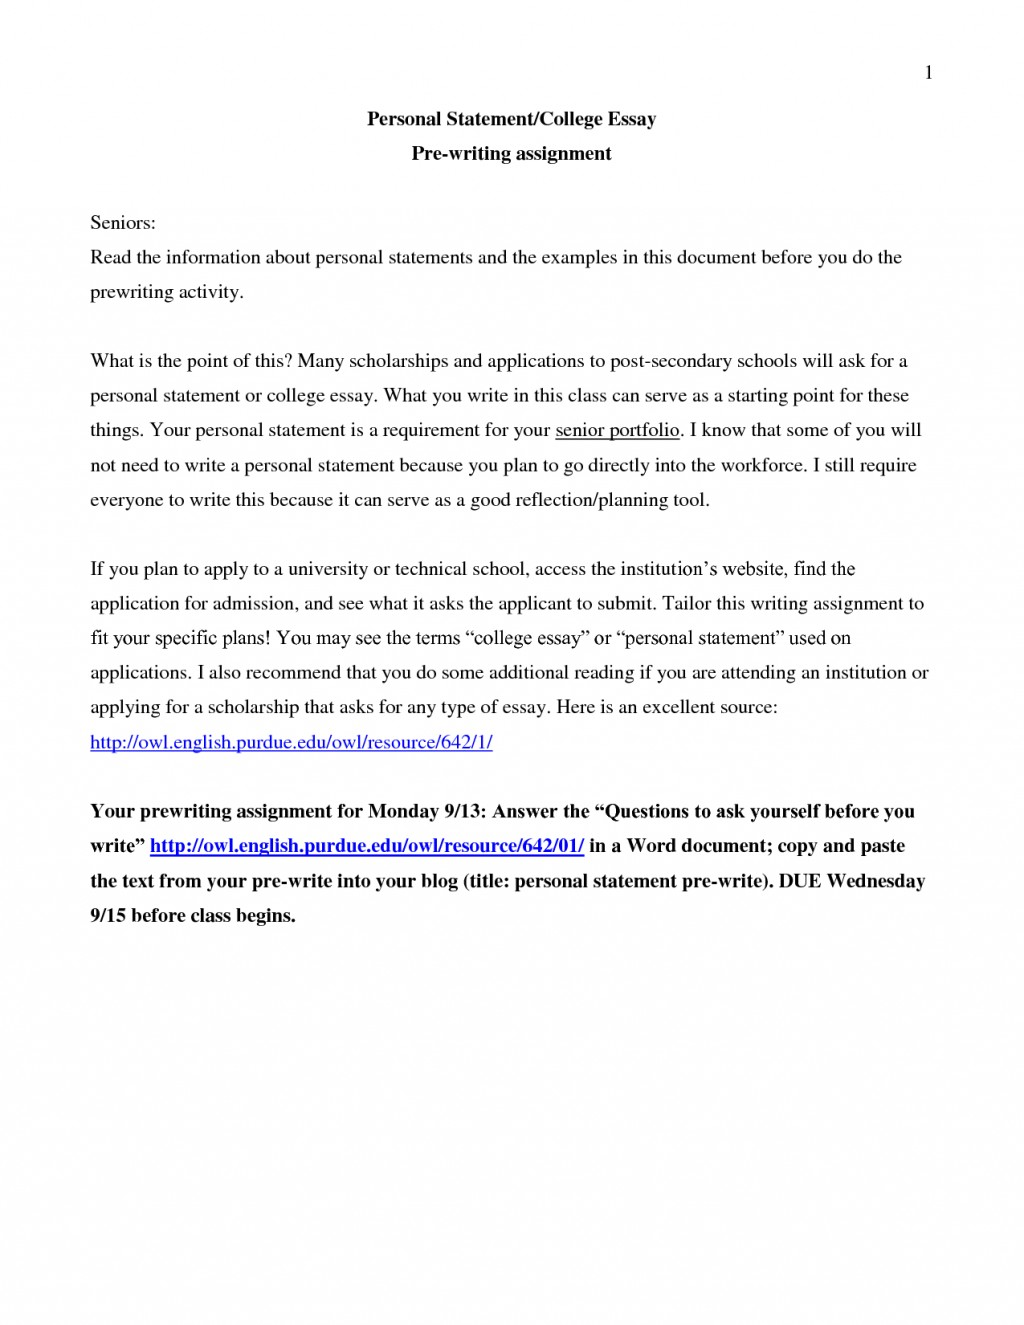 003 Uf Essay Prompts Prompt Practice Co Our Tips On Writing Your Applications Ahigk Unforgettable Honors Application Questions Large